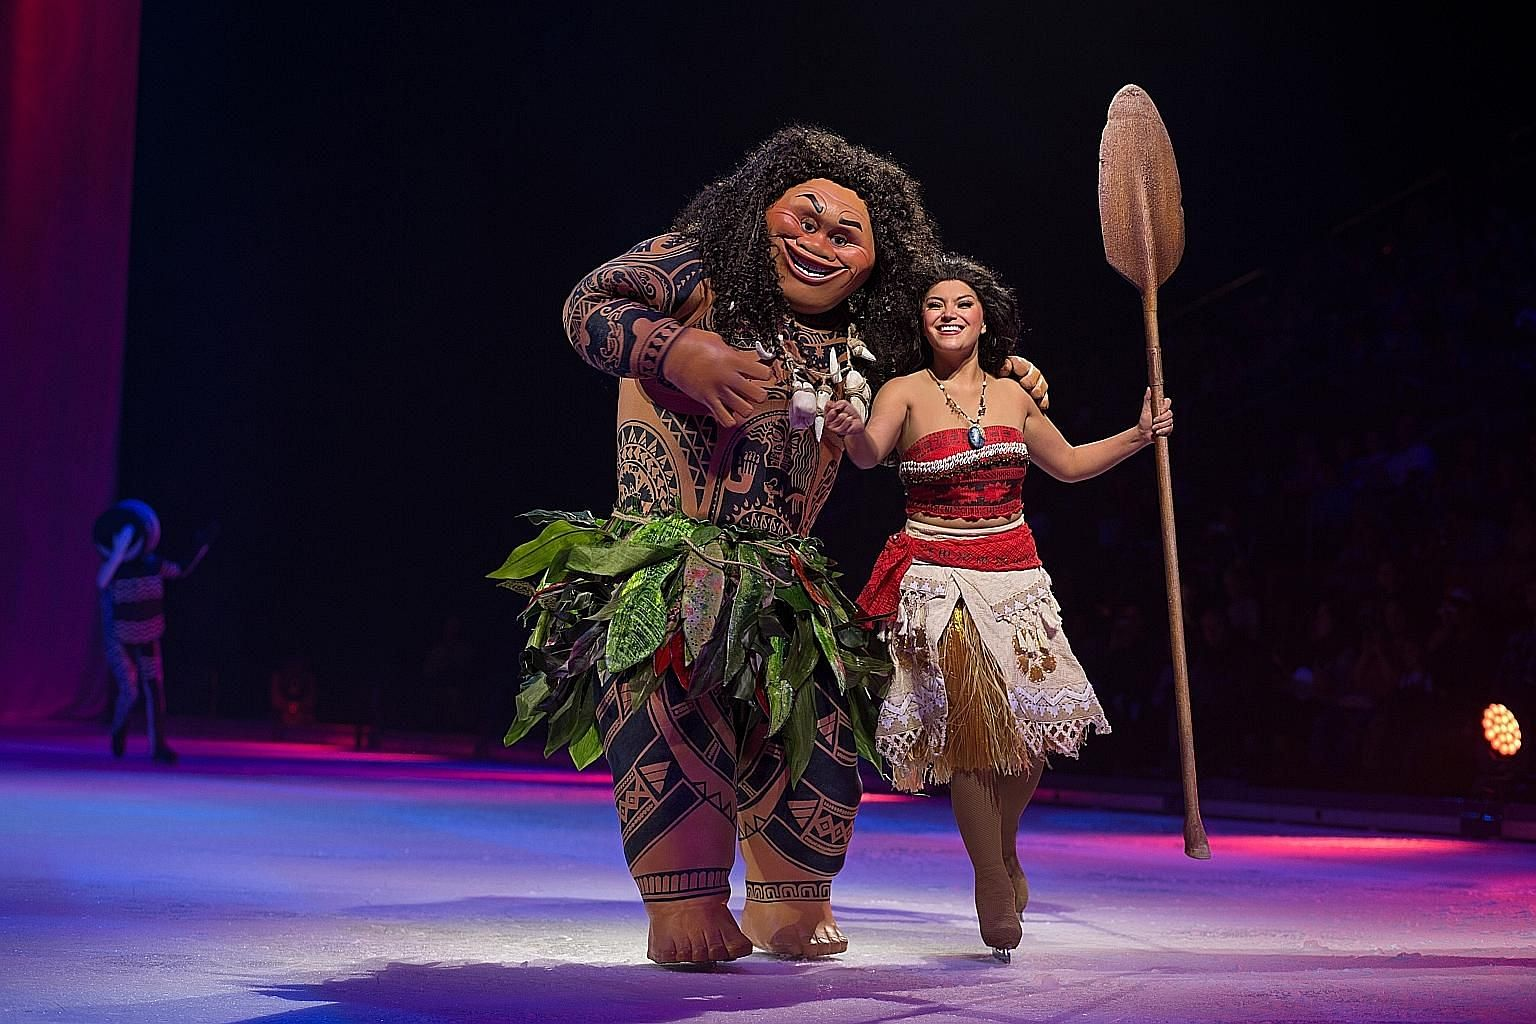 Live Your Dreams lets you follow Moana (right) on an adventure, with Mickey and Minnie Mouse presenting a feast for your senses, featuring the beloved characters from Beauty and the Beast, Frozen, Tangled, Cinderella, and Disney and Pixar's Coco.